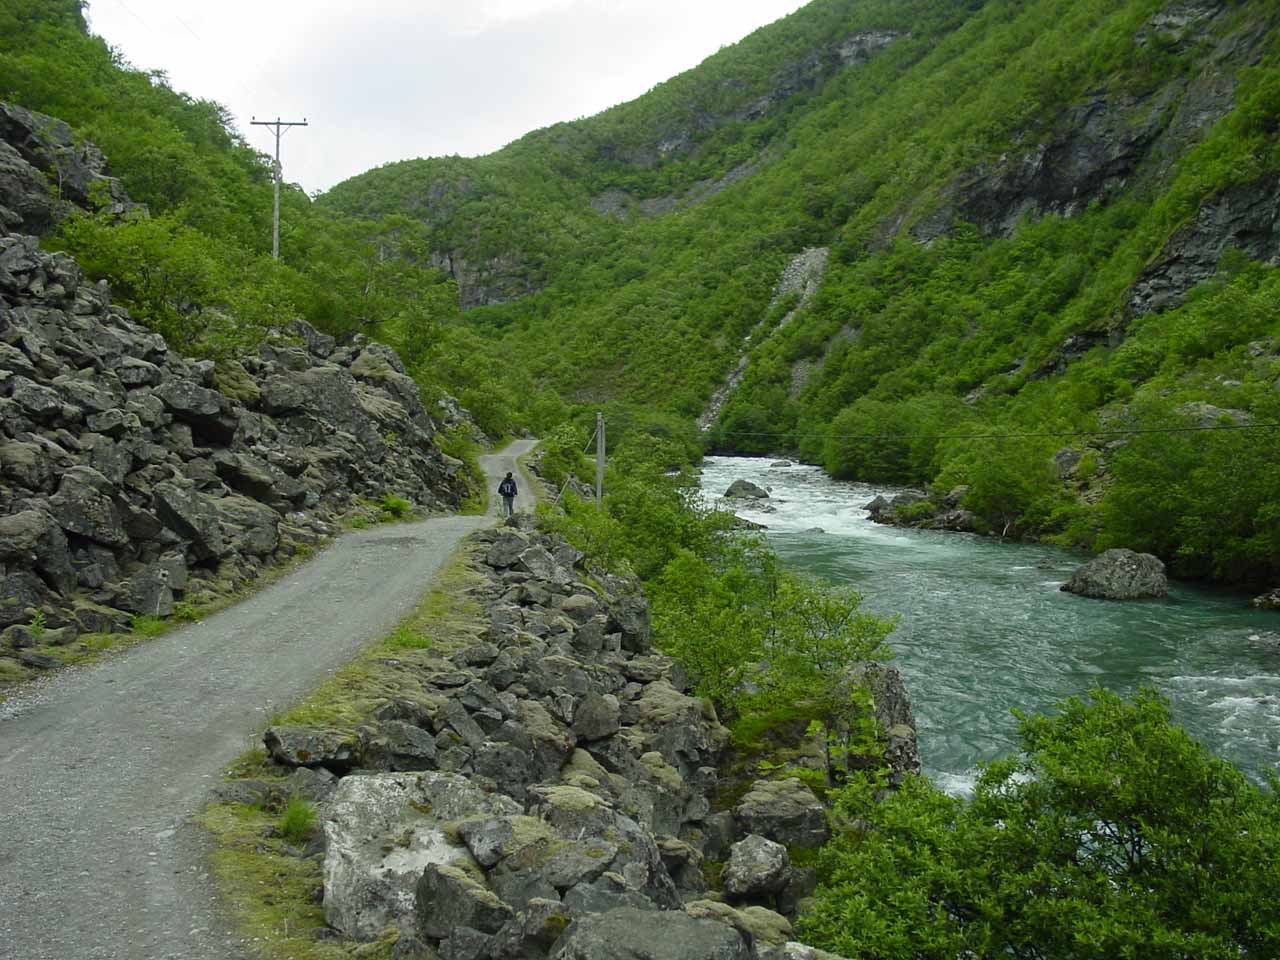 After the rockfall-prone section, the road continued following alongside the Utla River